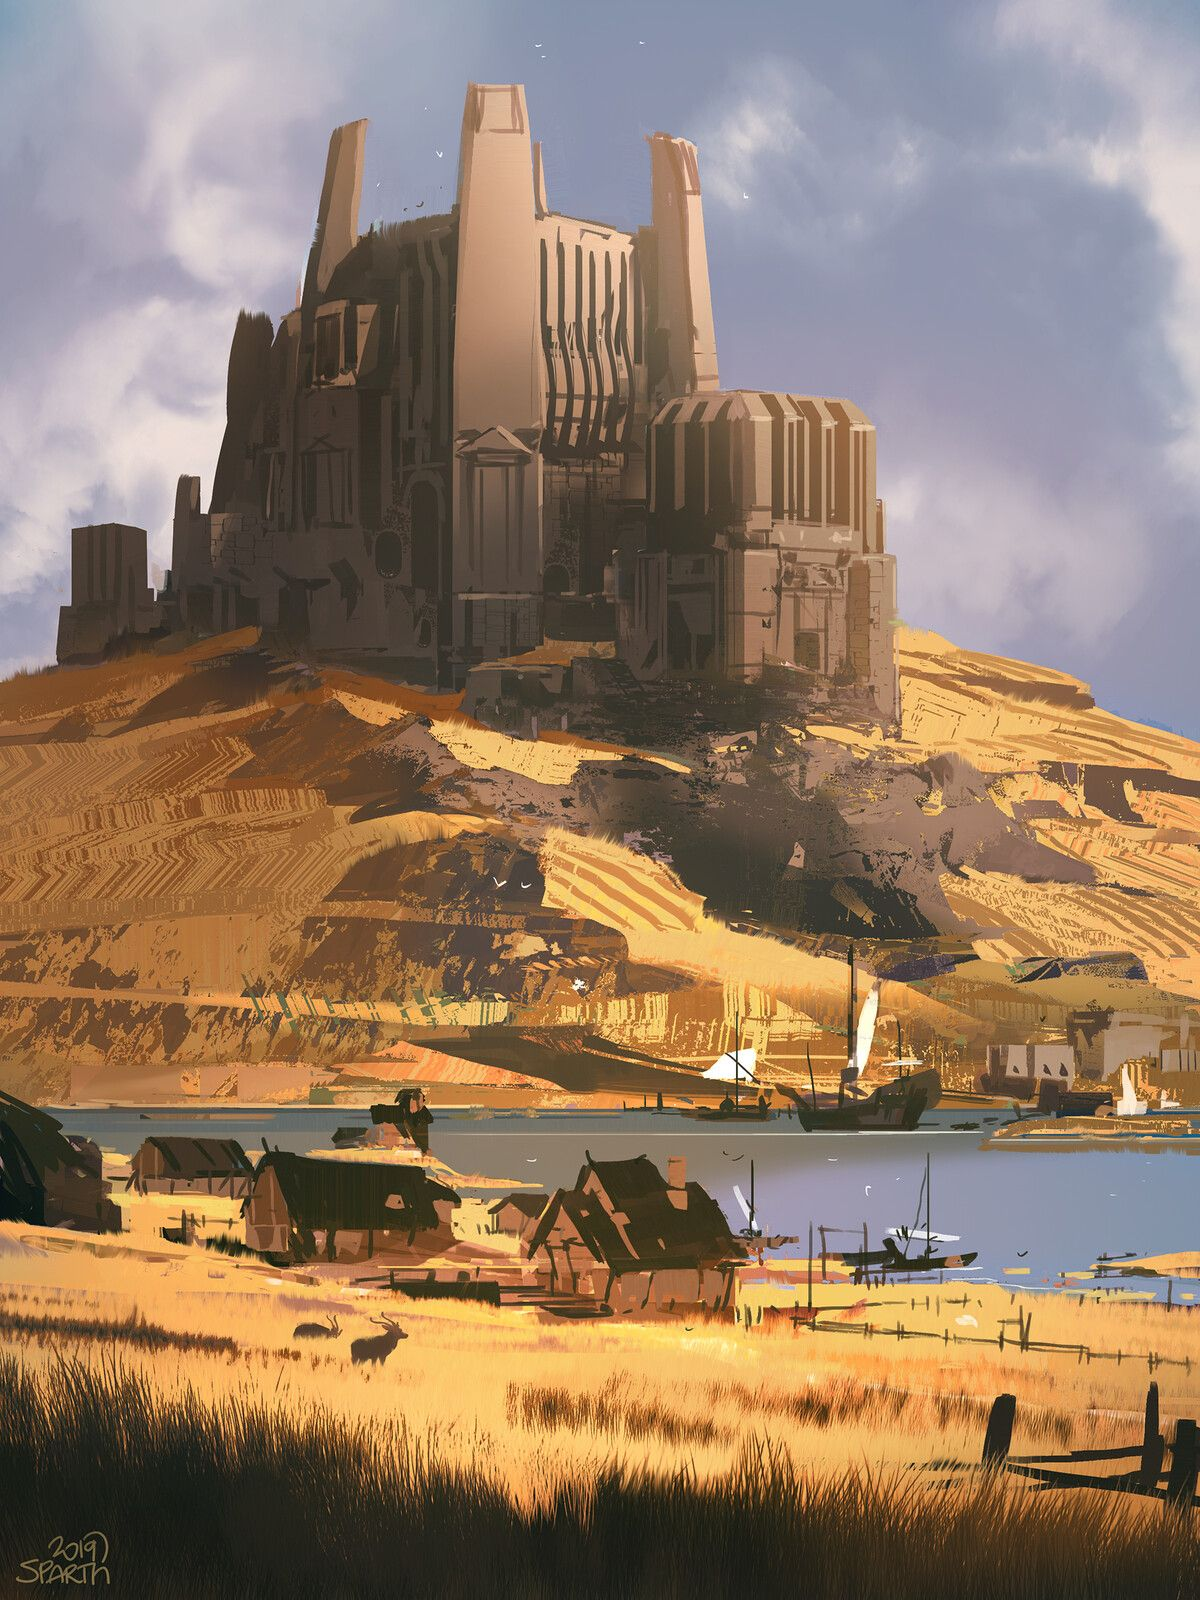 Pin By Bryan Galindo On Landscapes In 2020 Fantasy Landscape Perspective Drawing Architecture Environment Concept Art